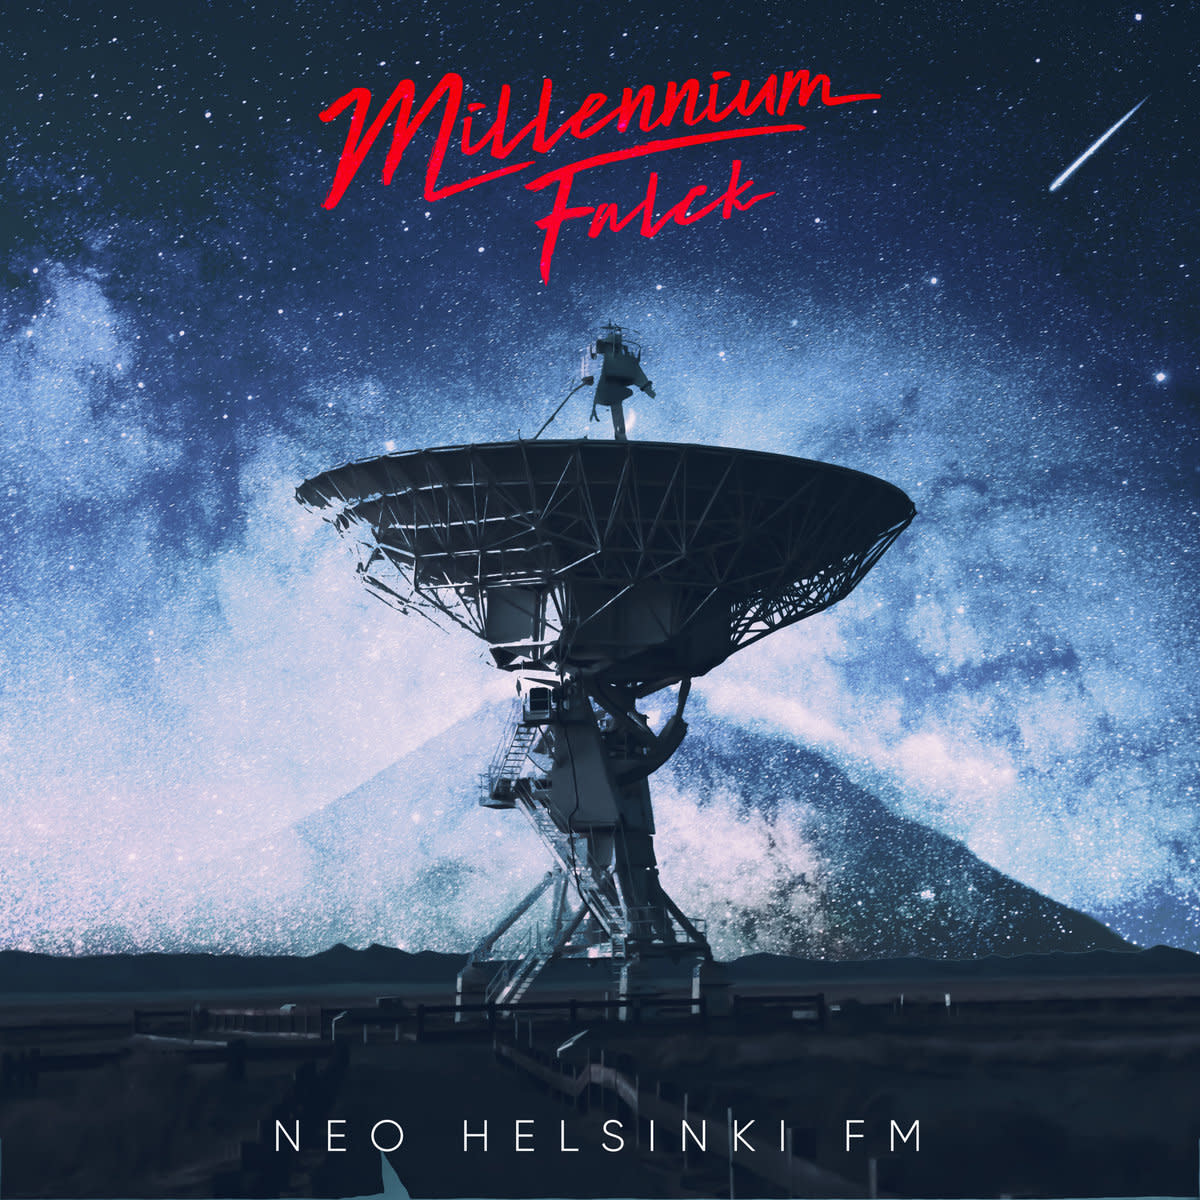 synth-album-review-neo-helsinki-fm-by-millennium-falck